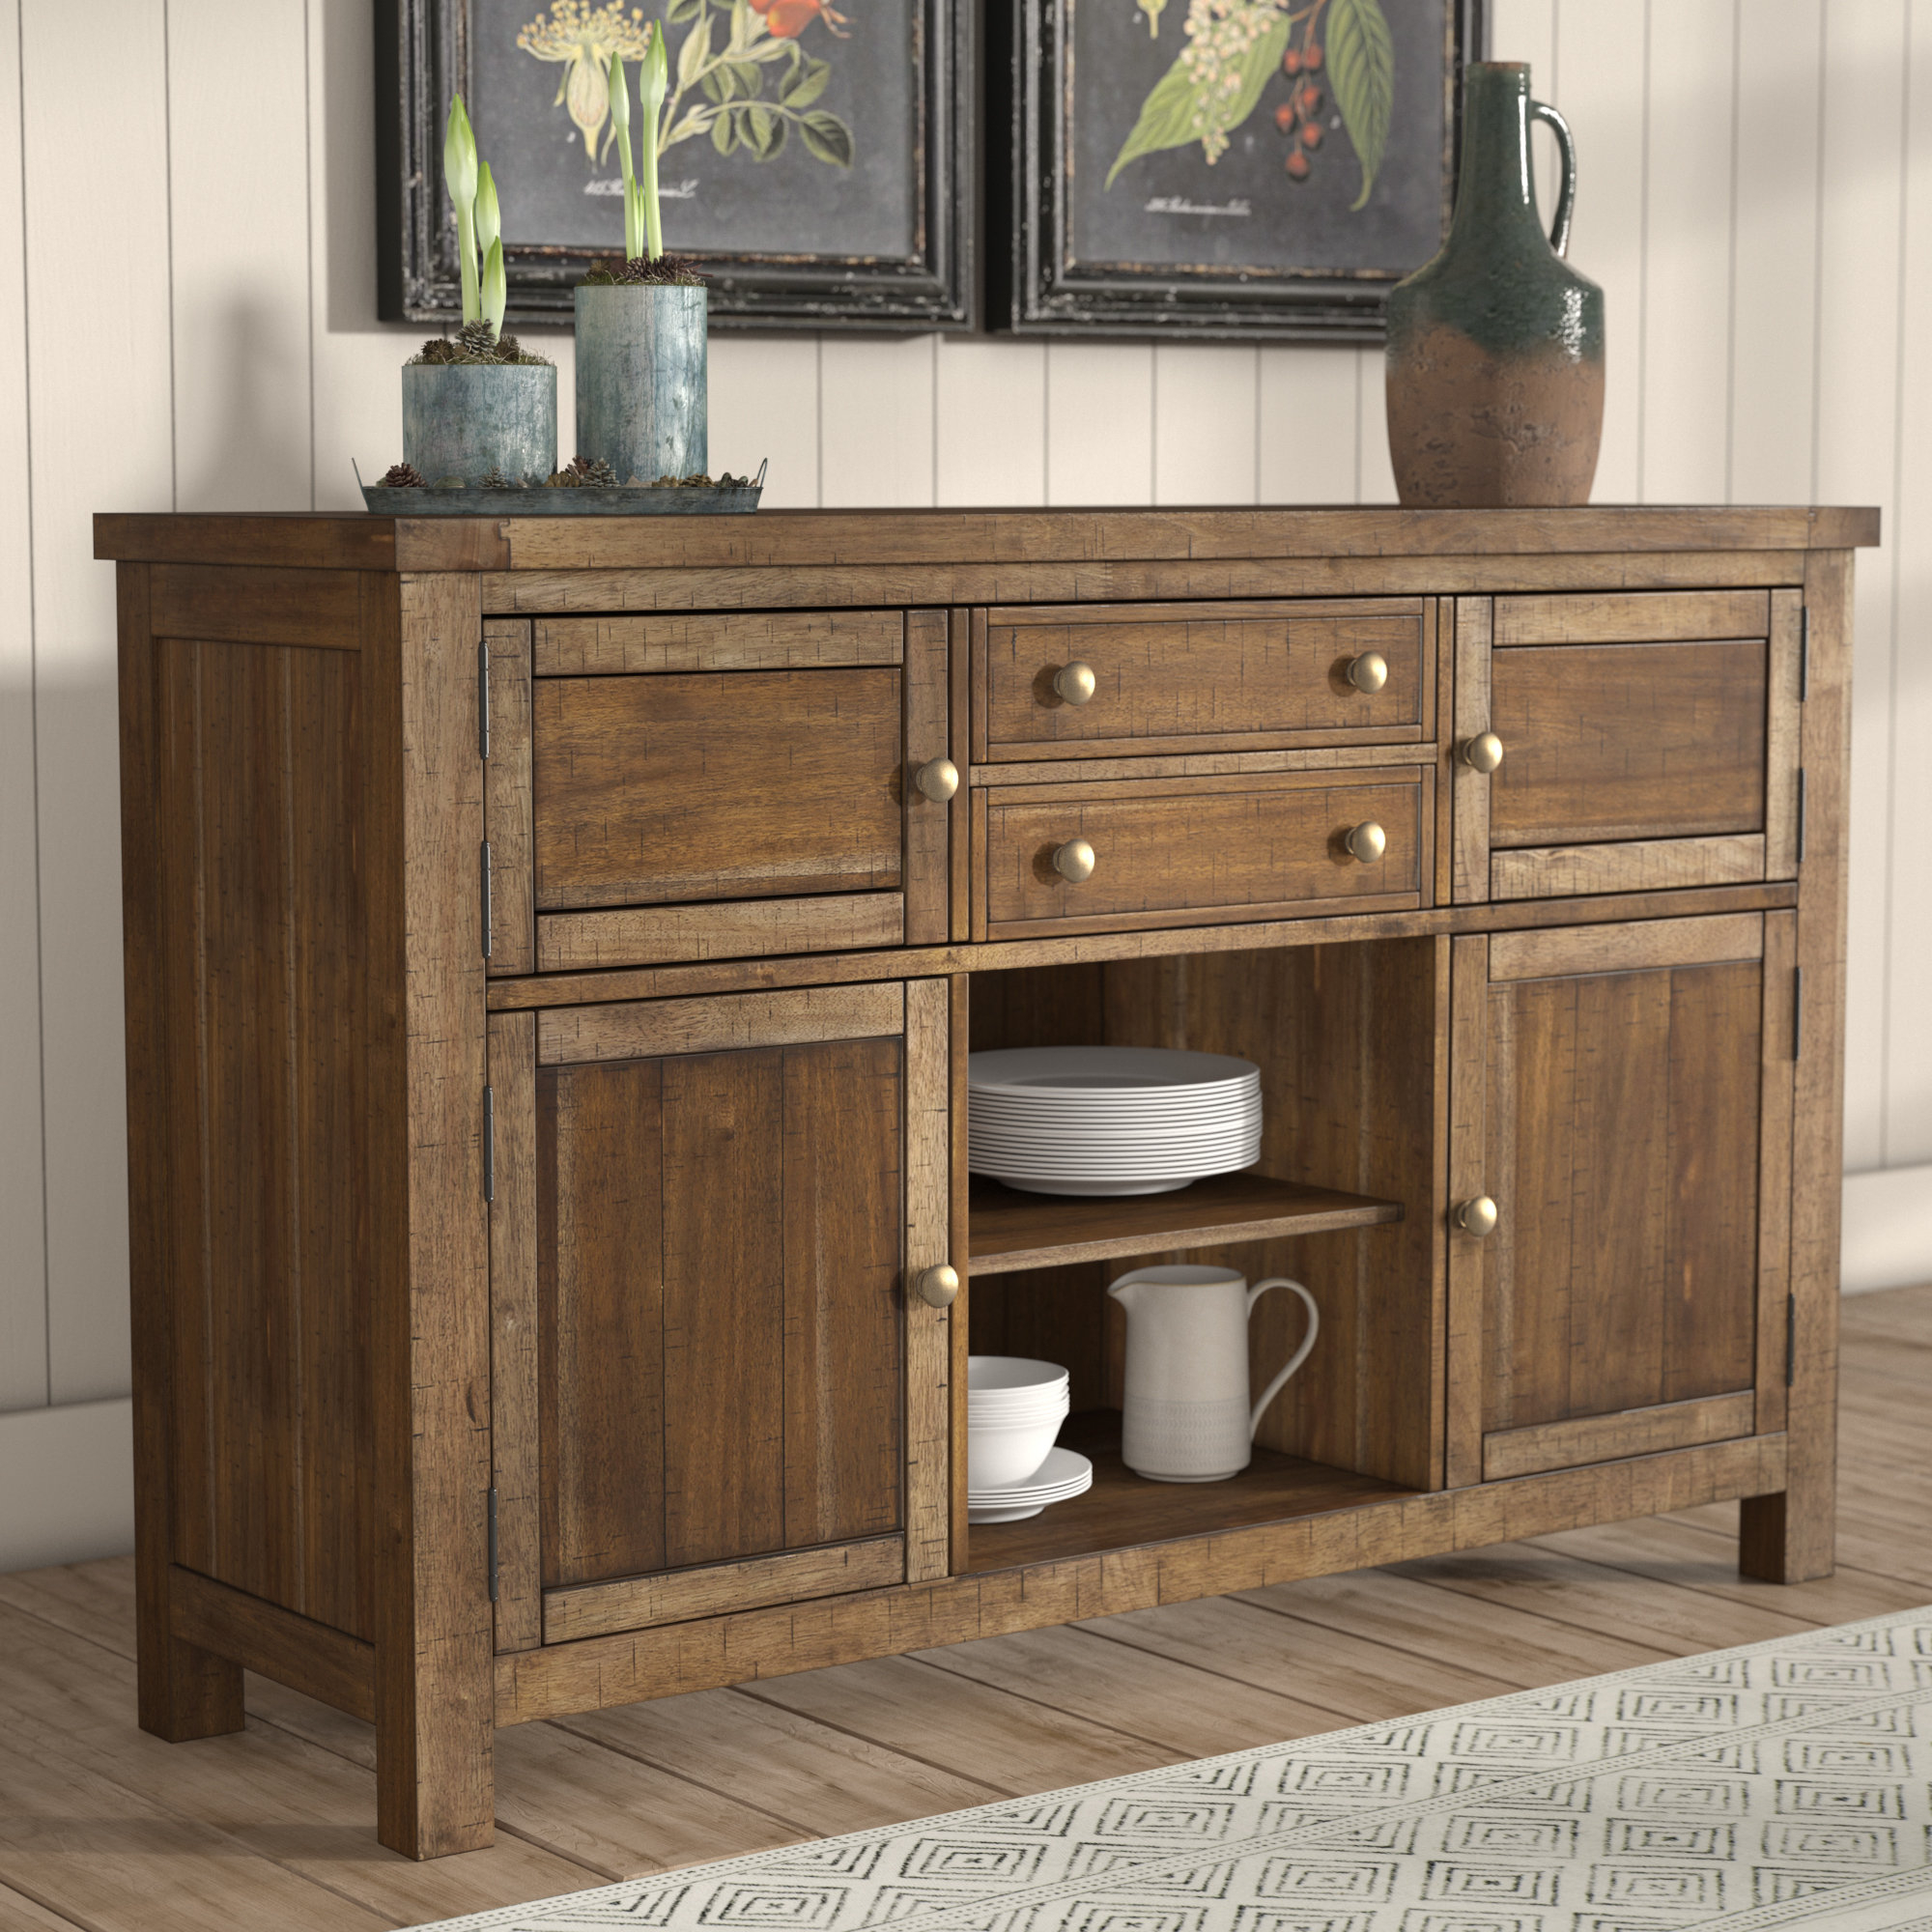 Laurel Foundry Modern Farmhouse Hillary Dining Room Buffet Table